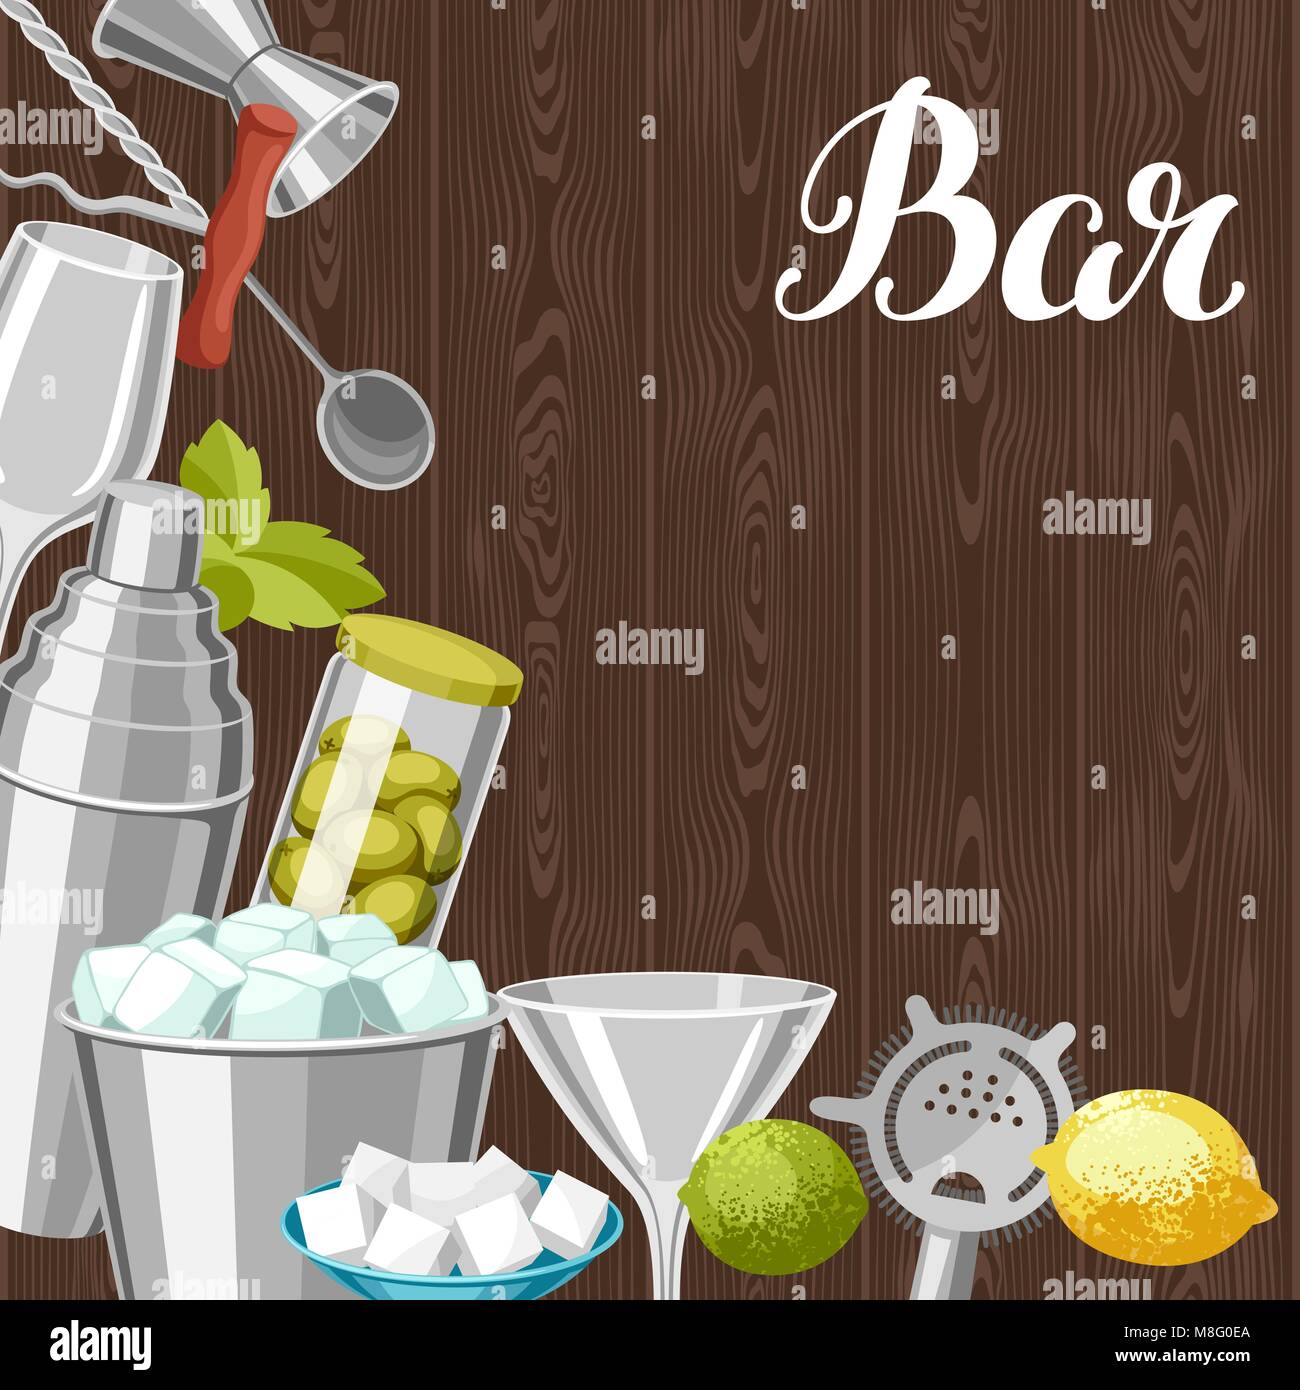 Cocktail bar background. Essential tools, glassware, mixers and garnishes. Stock Vector